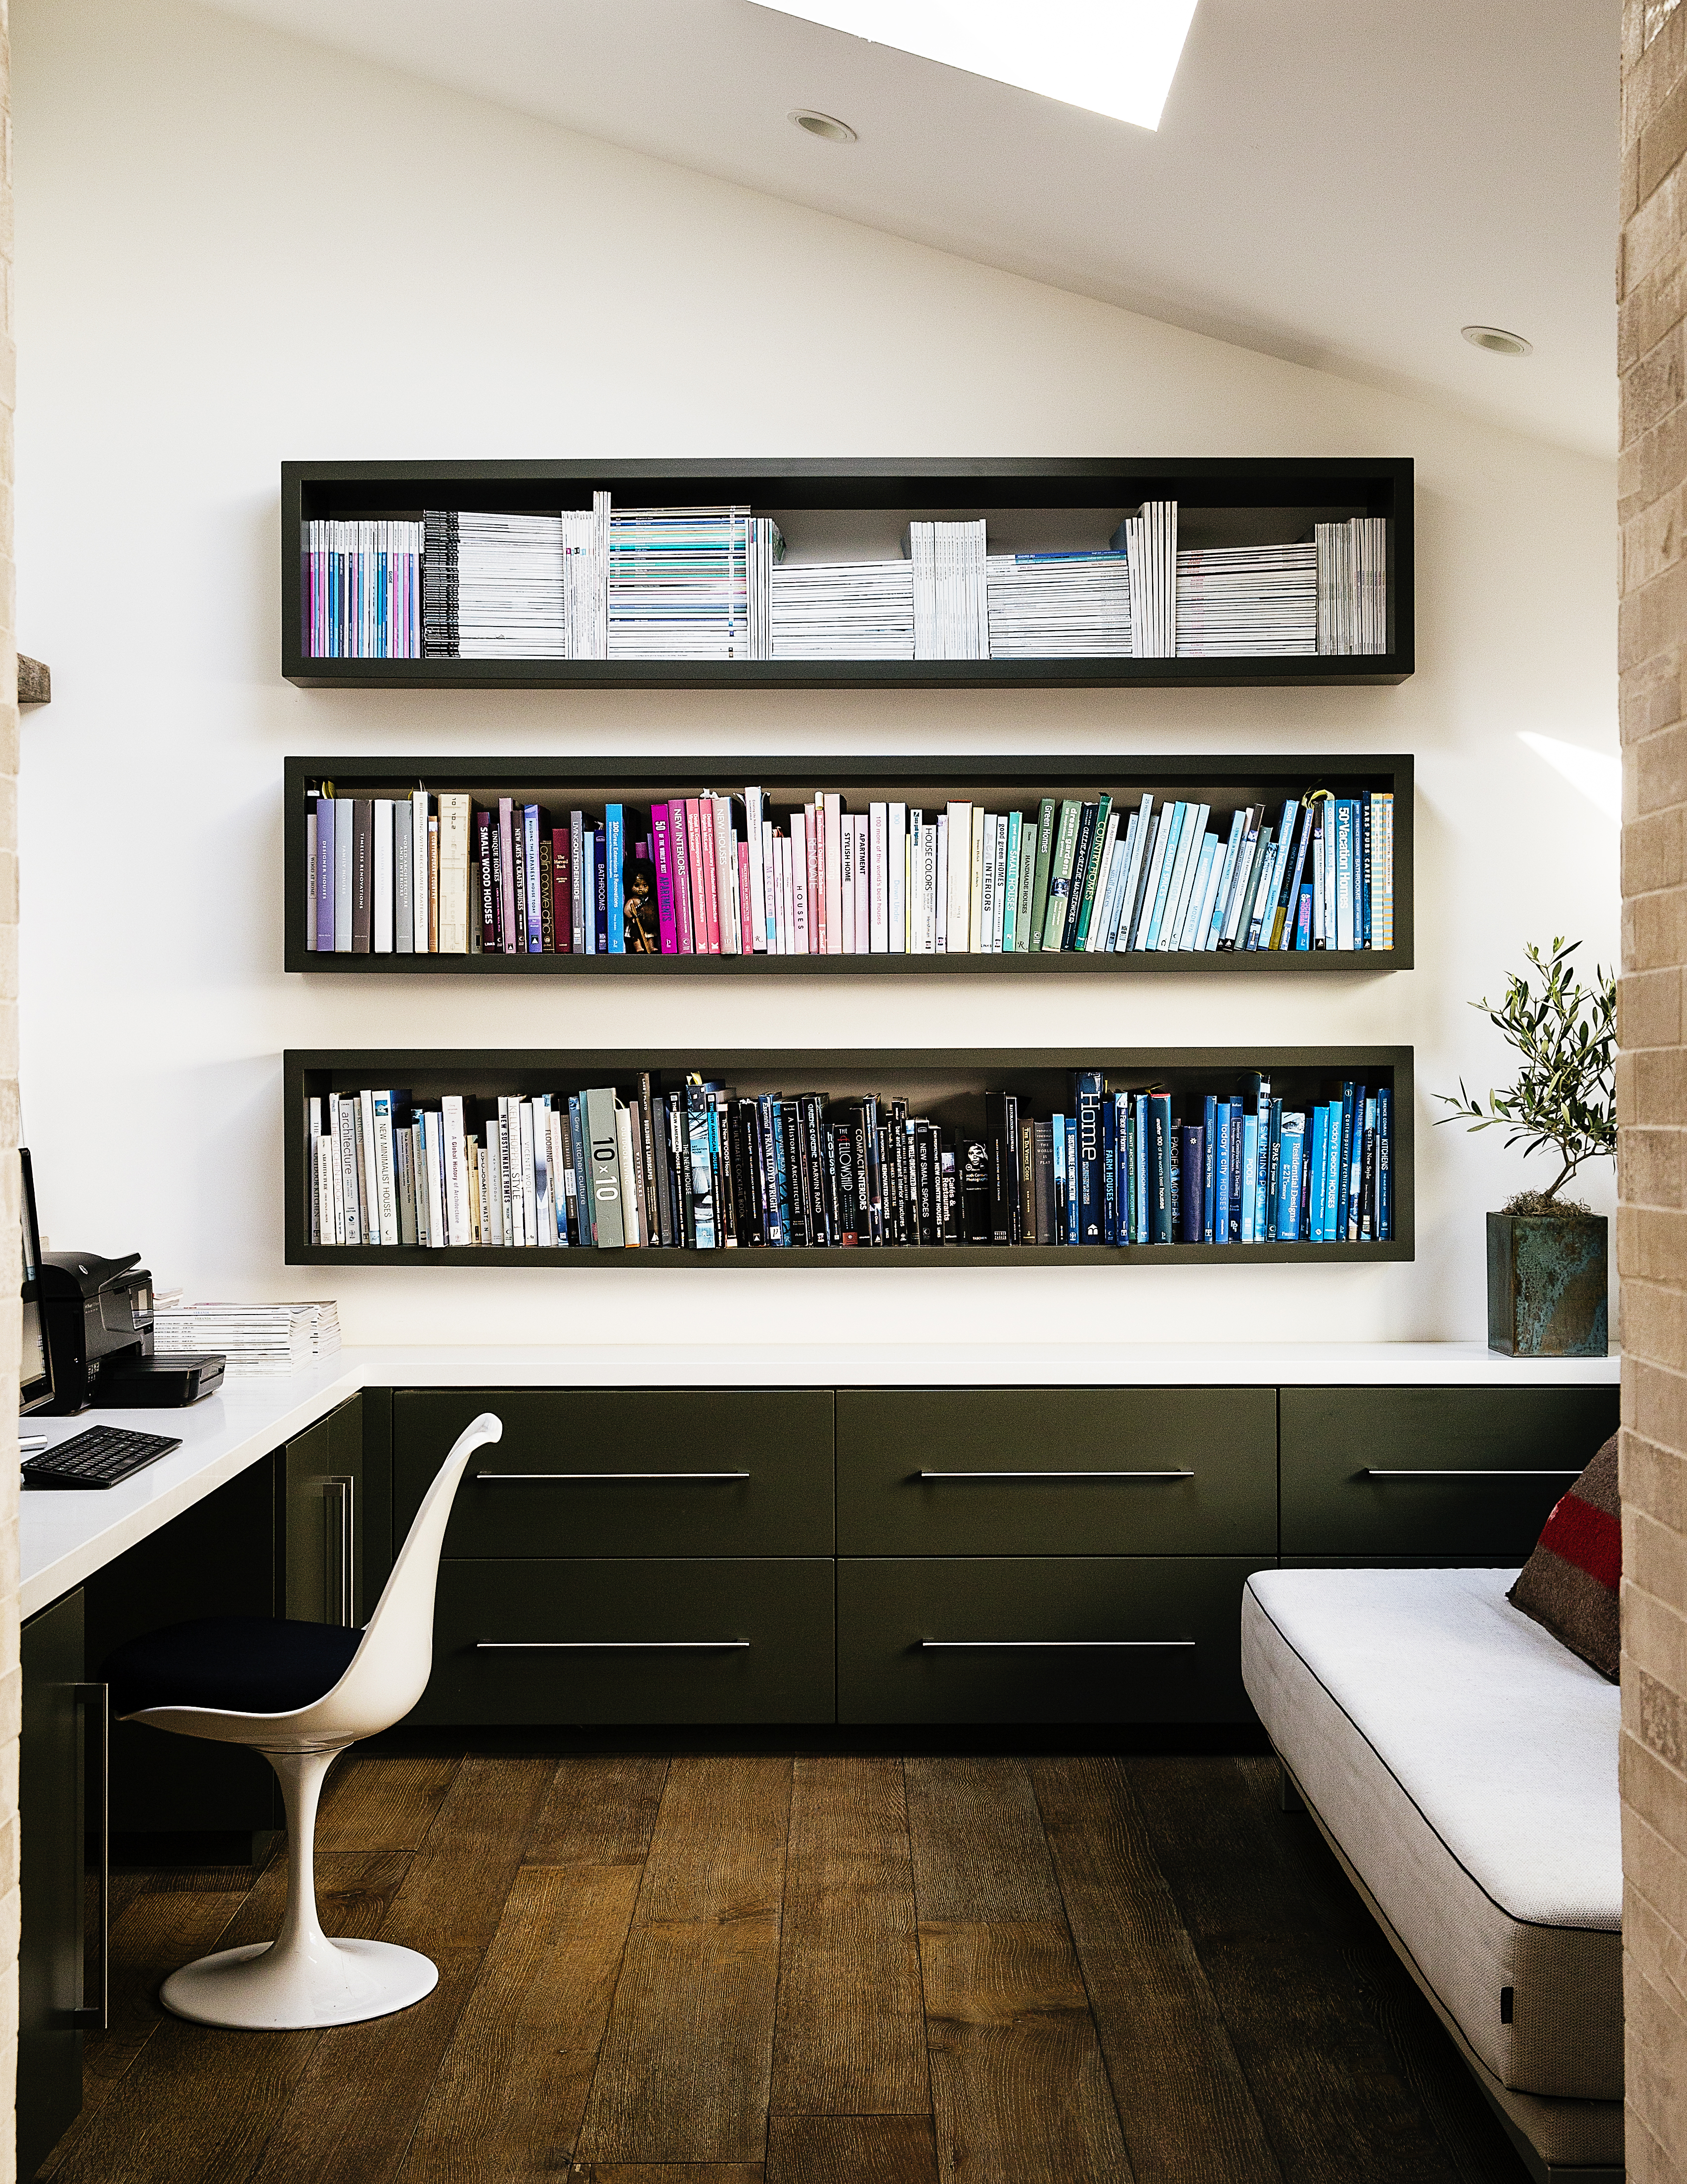 Inset in style Create the storage you